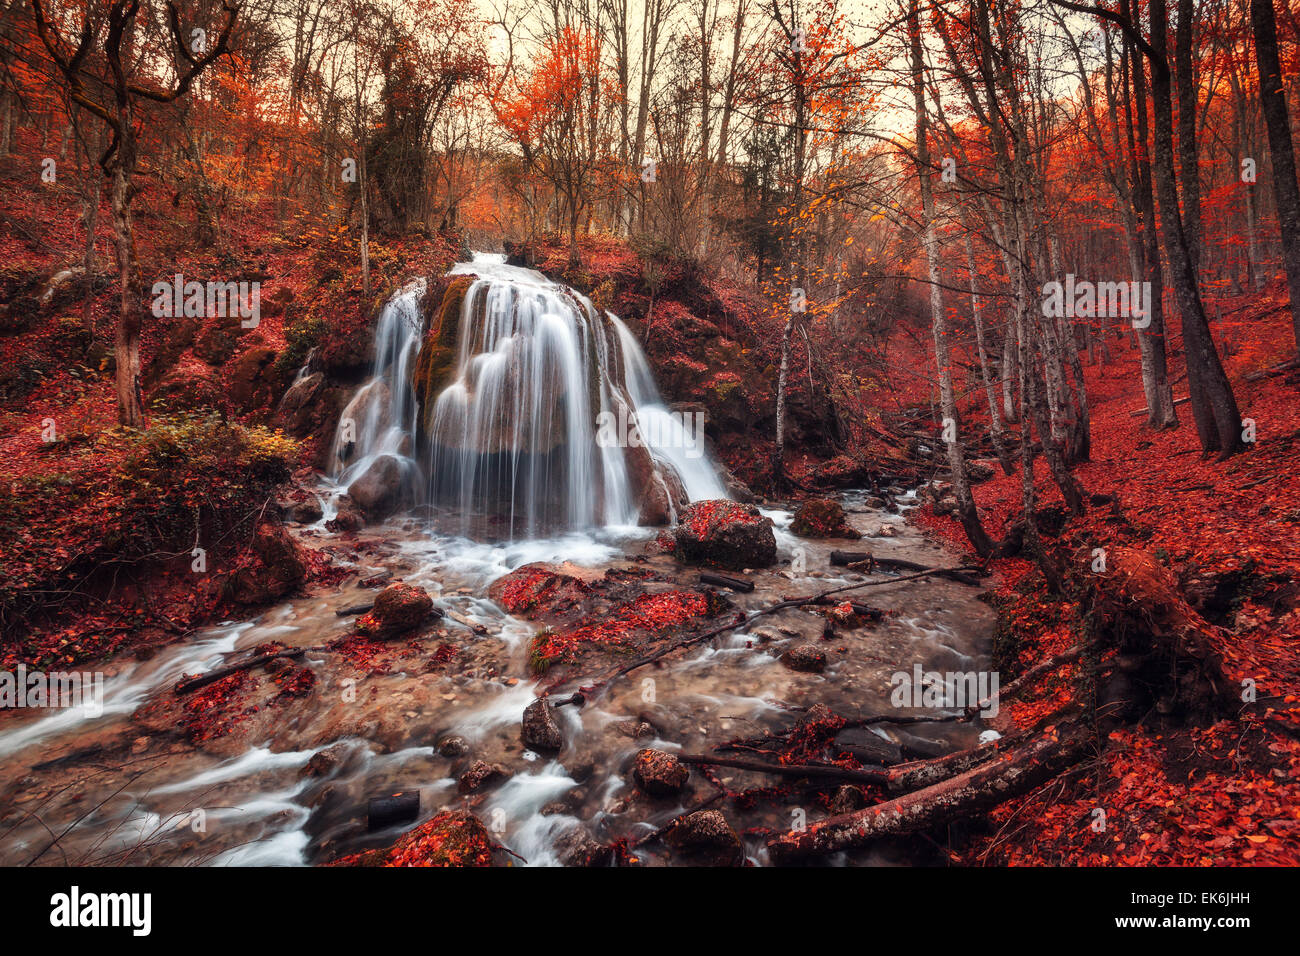 Tree With Leaves Falling Wallpaper Beautiful Waterfall With Trees Red Leaves Rocks And